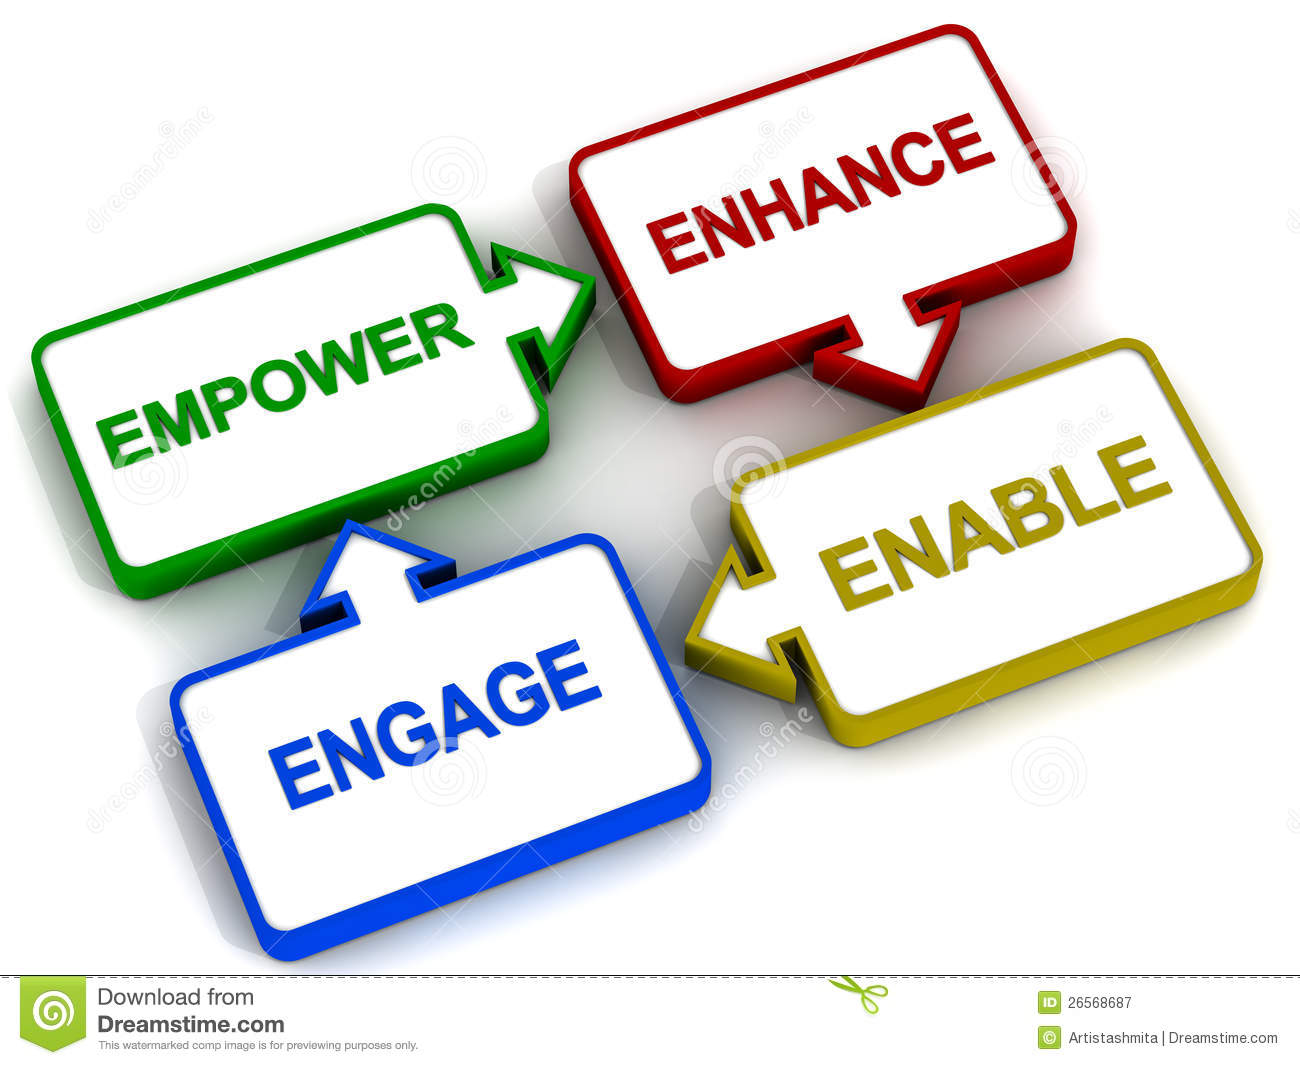 Employees cliparts free download. Motivation clipart employee empowerment